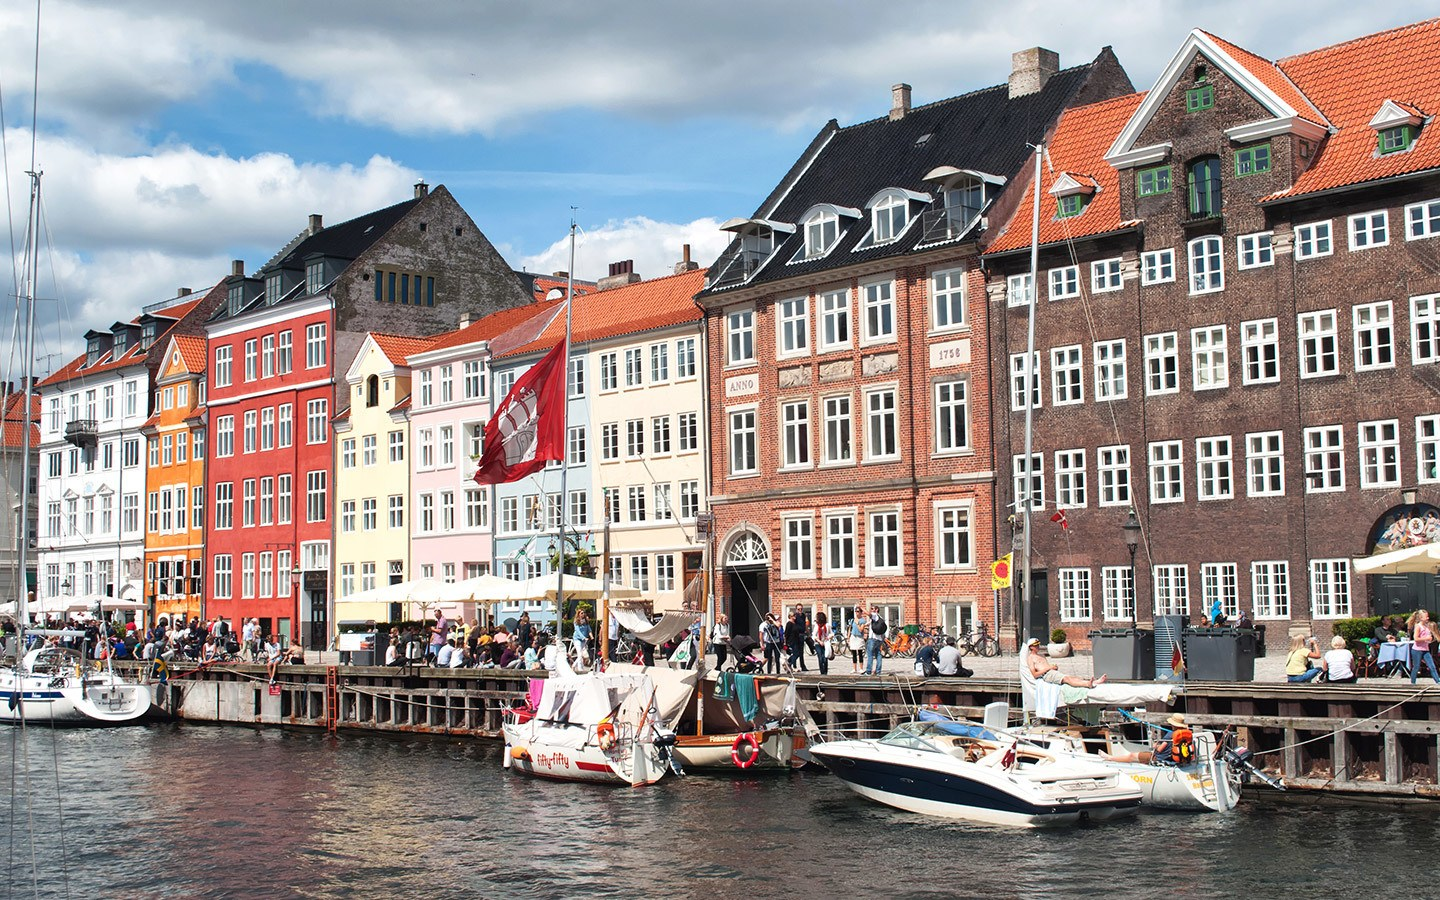 Along the waterfront in Nyhavn, Copenhagen